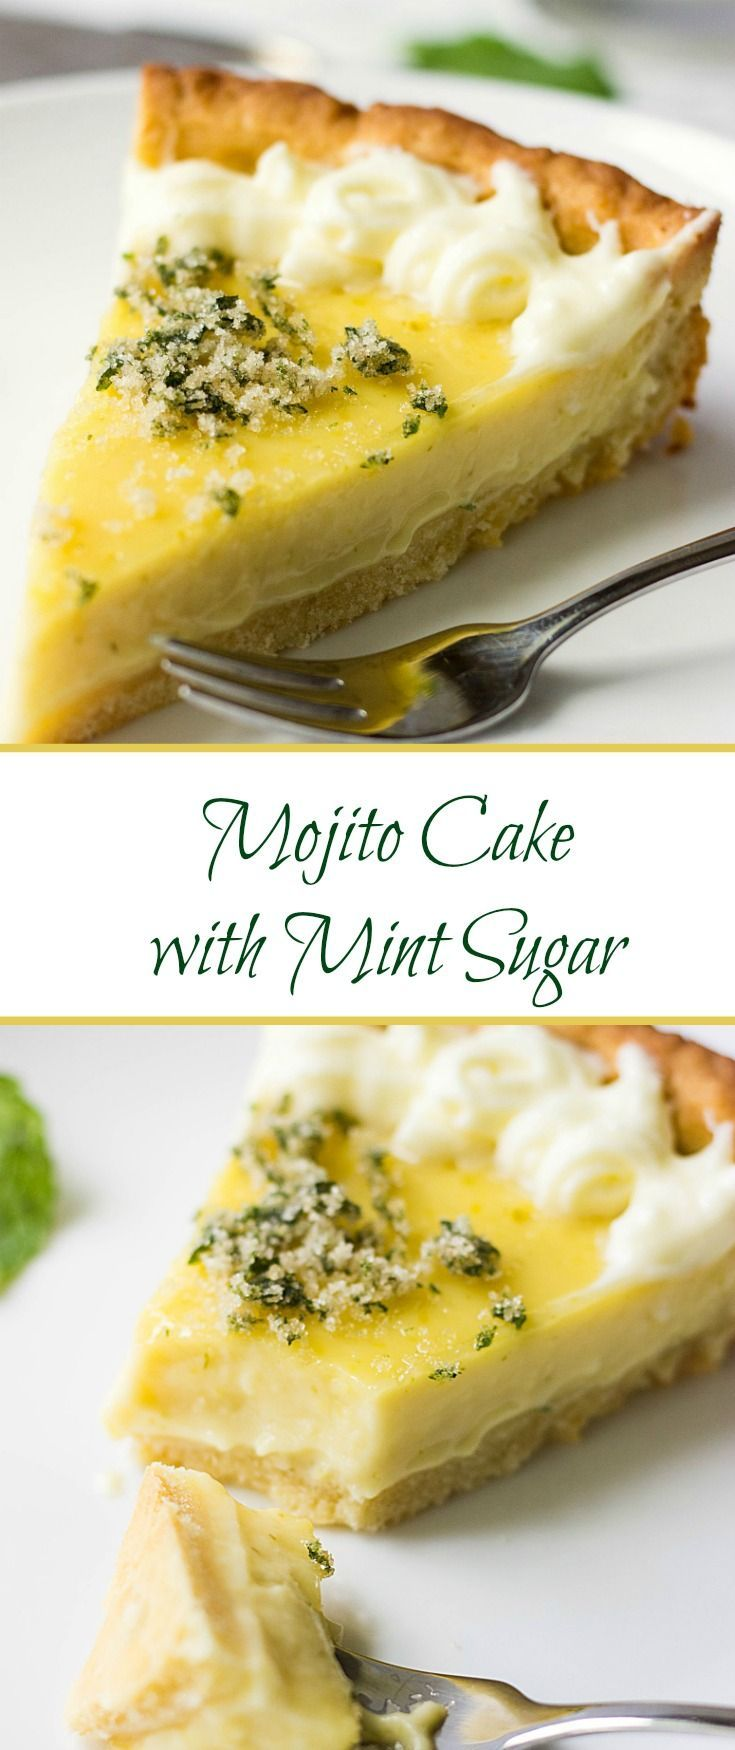 This mouthwatering and scrumptious Mojito cake with Mint Sugar has enough…